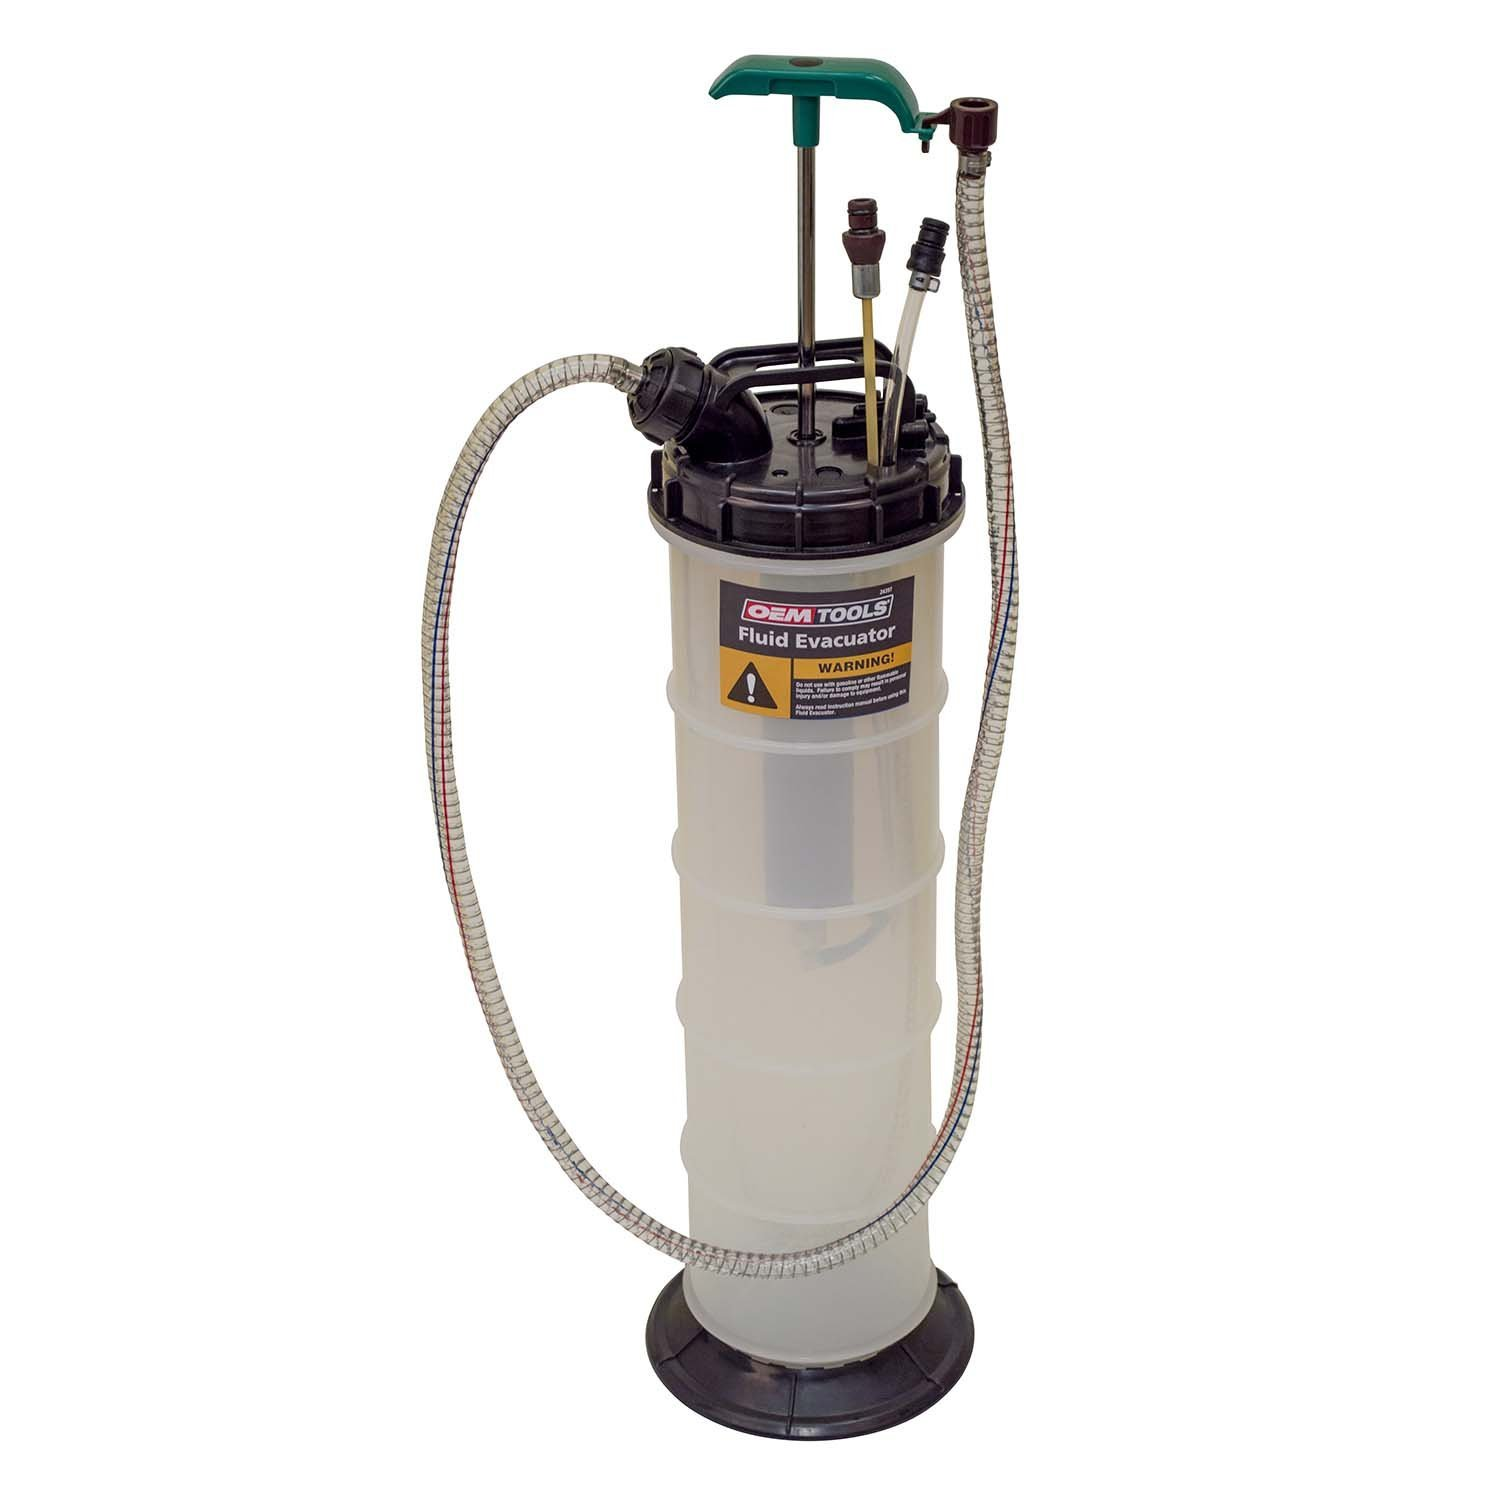 OEMTOOLS 24397 9.5 Liter Fluid Evacuator (Renewed)